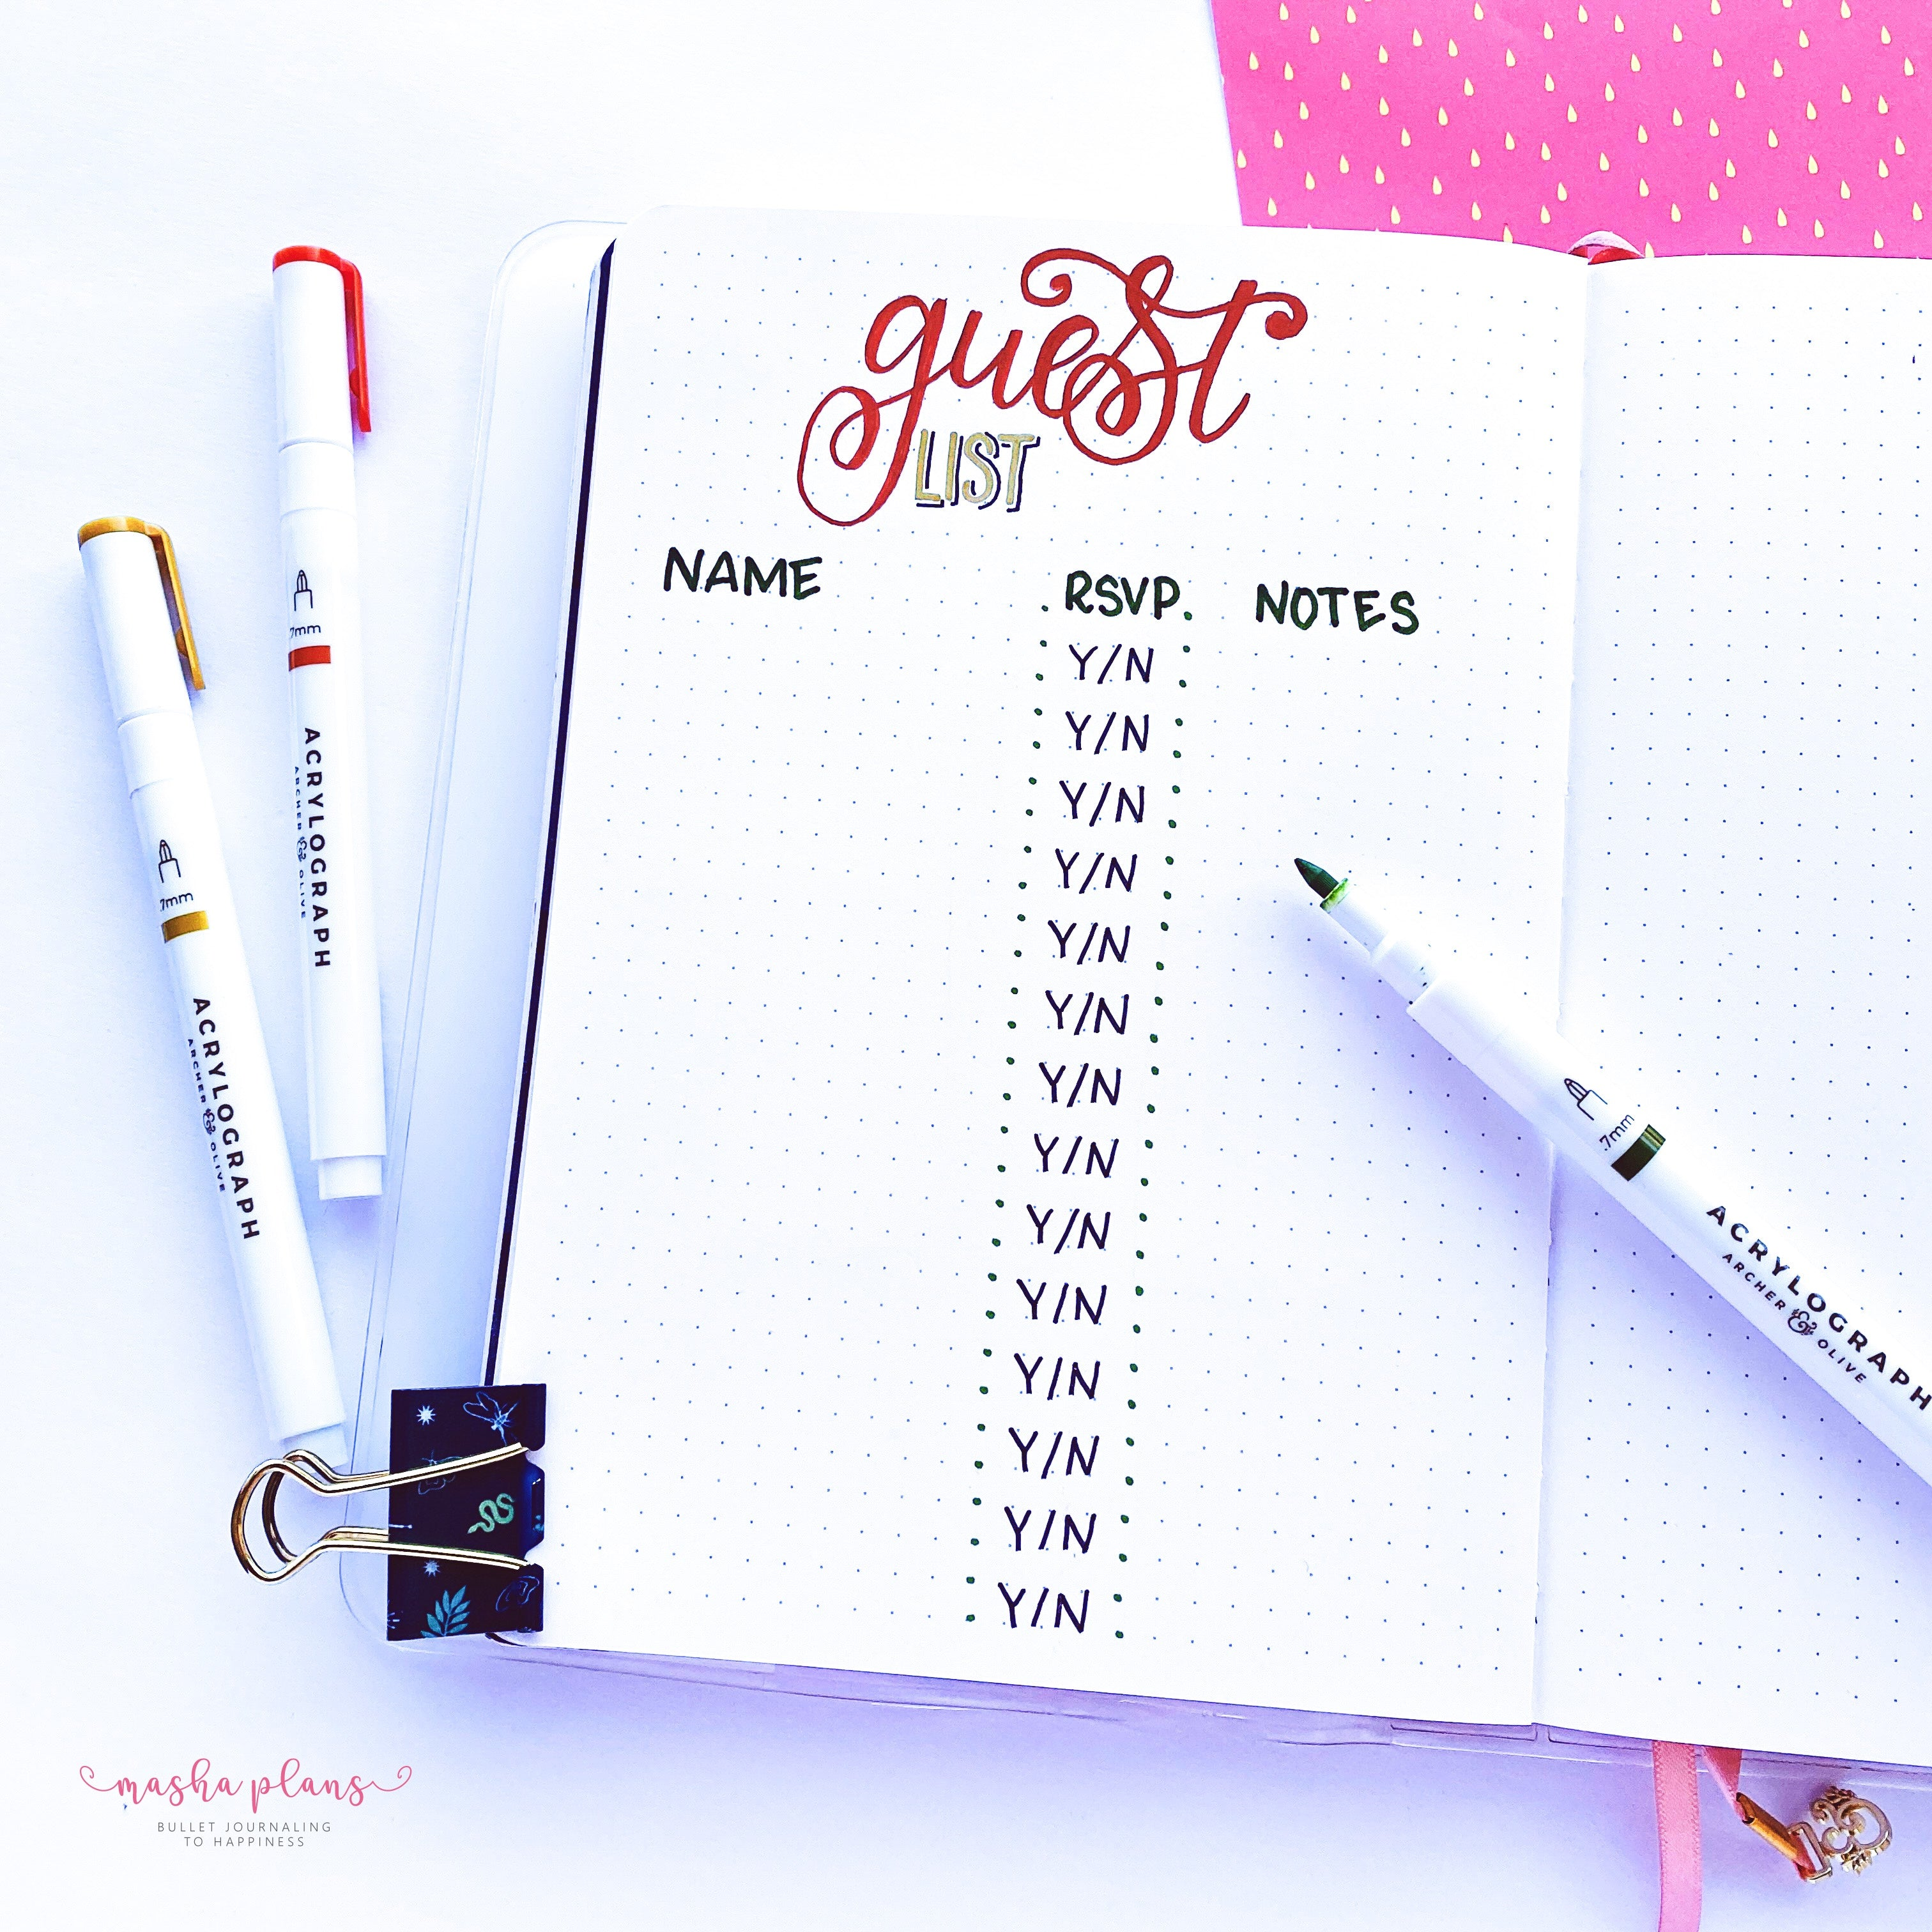 guest list spread